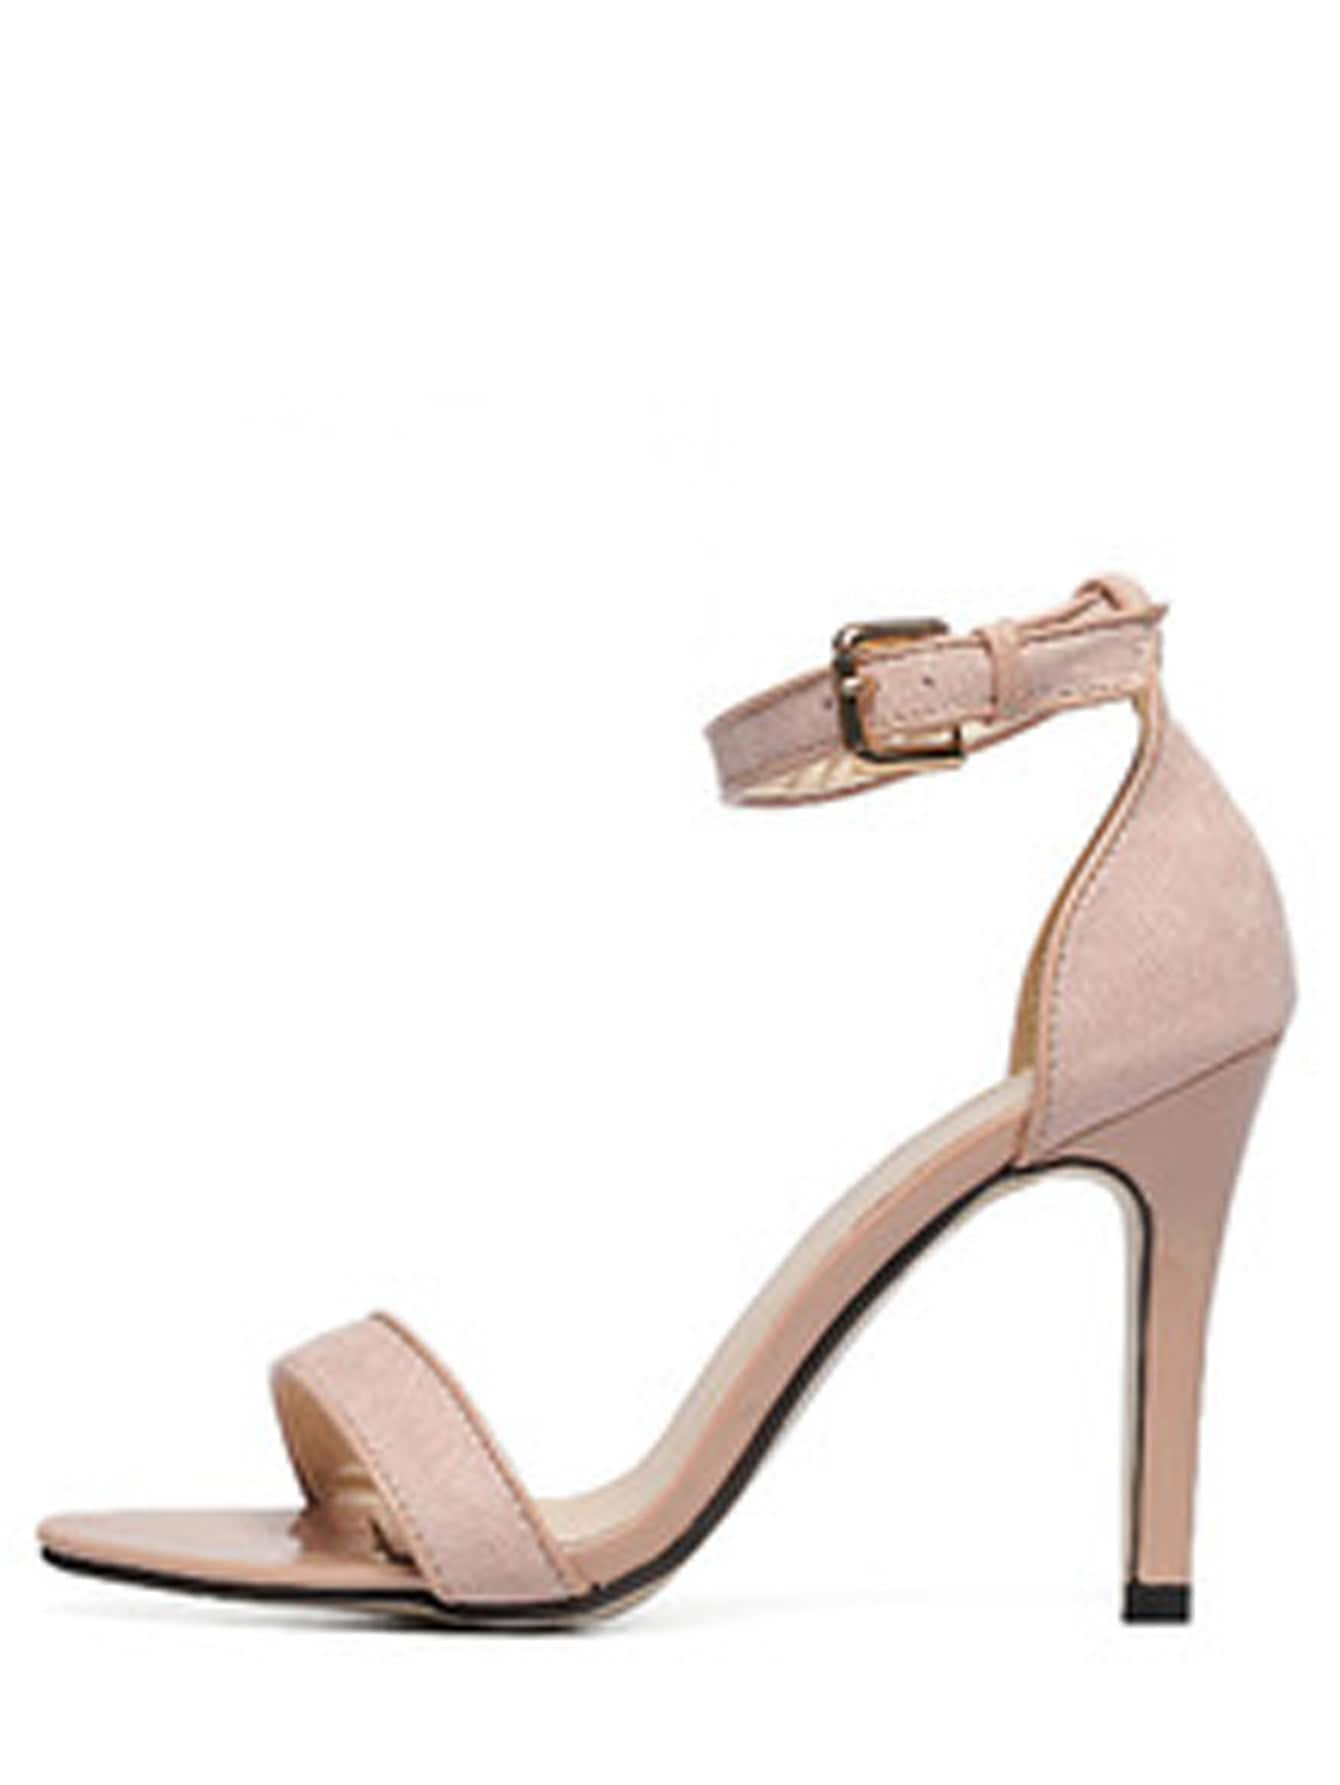 Image of Apricot Open Toe Ankle Strap High Stiletto Sandals